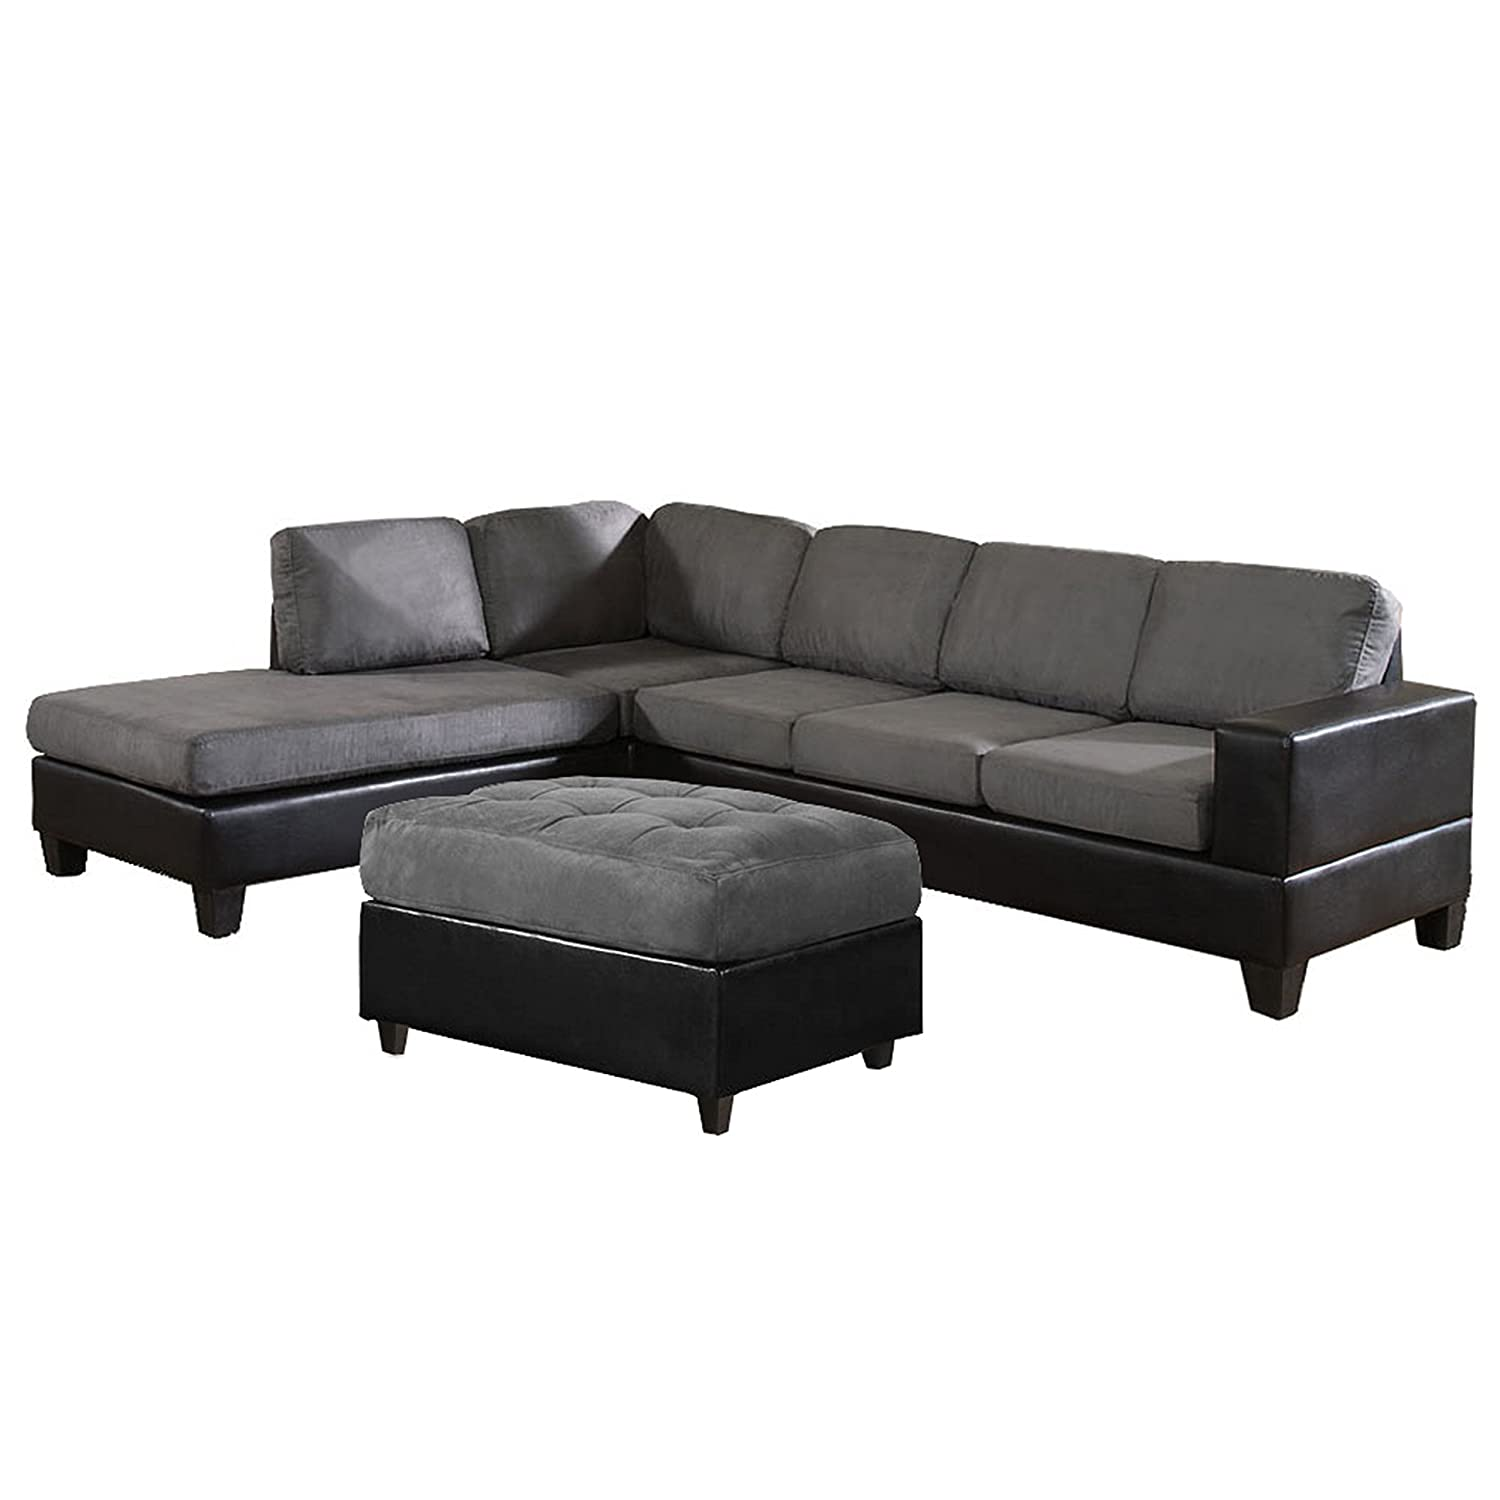 Amazon US Pride Sierra Microfiber Sectional Sofa with Ottoman